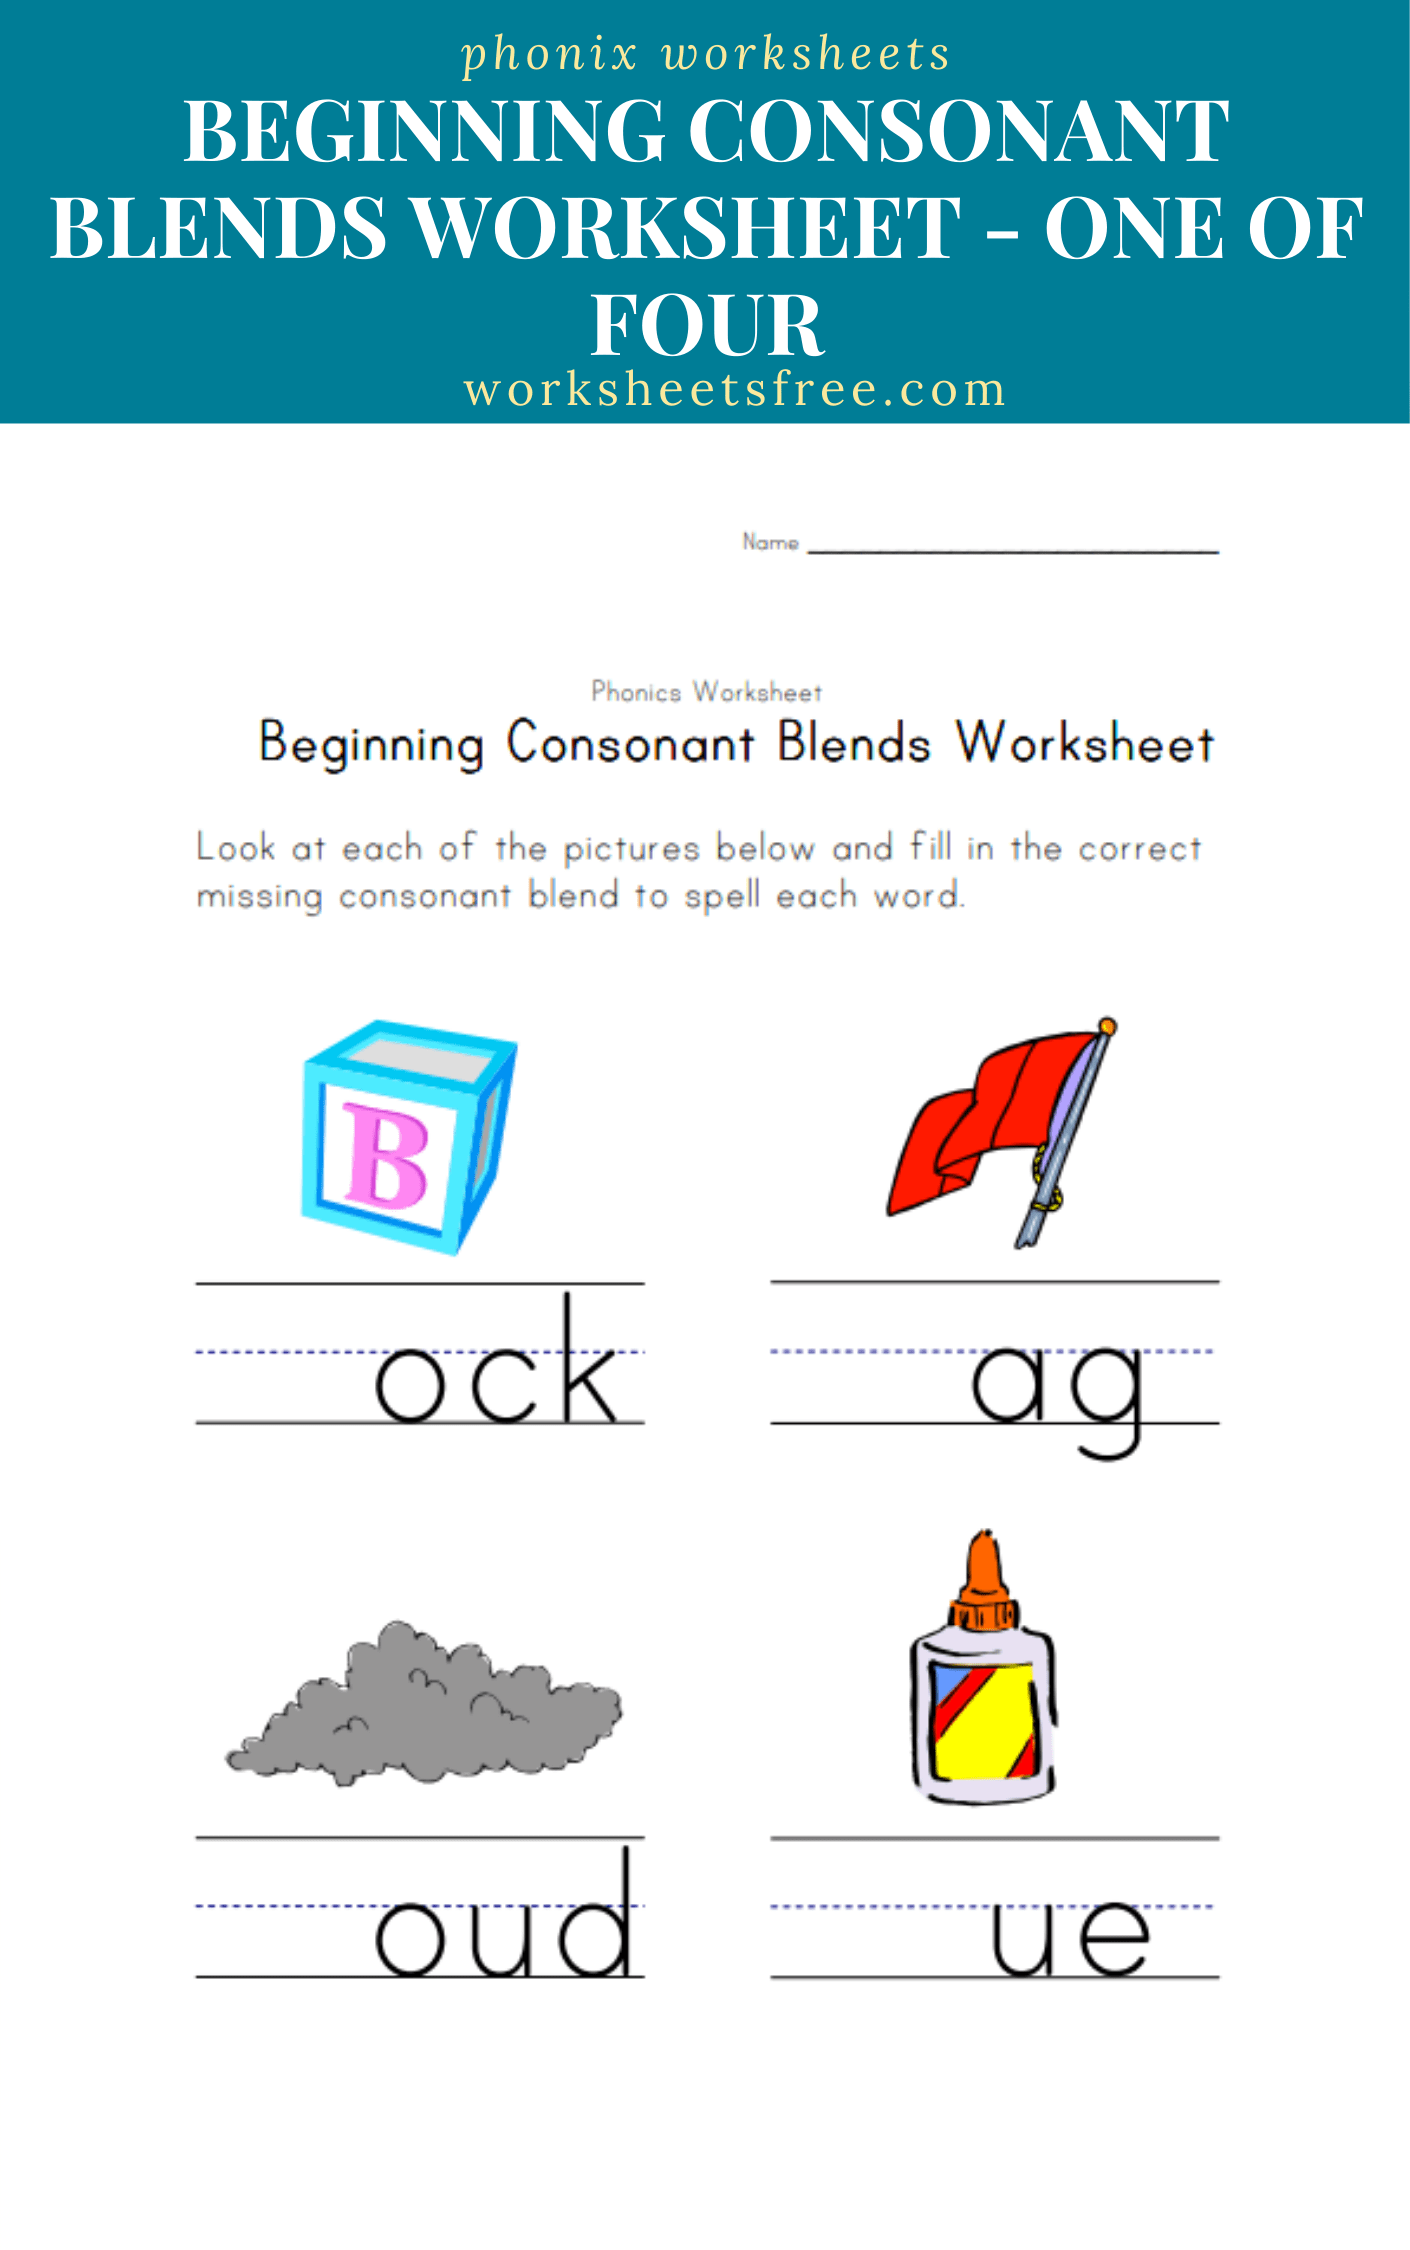 medium resolution of Beginning-Consonant-Blends-Worksheet-One-of-Four   Worksheets Free